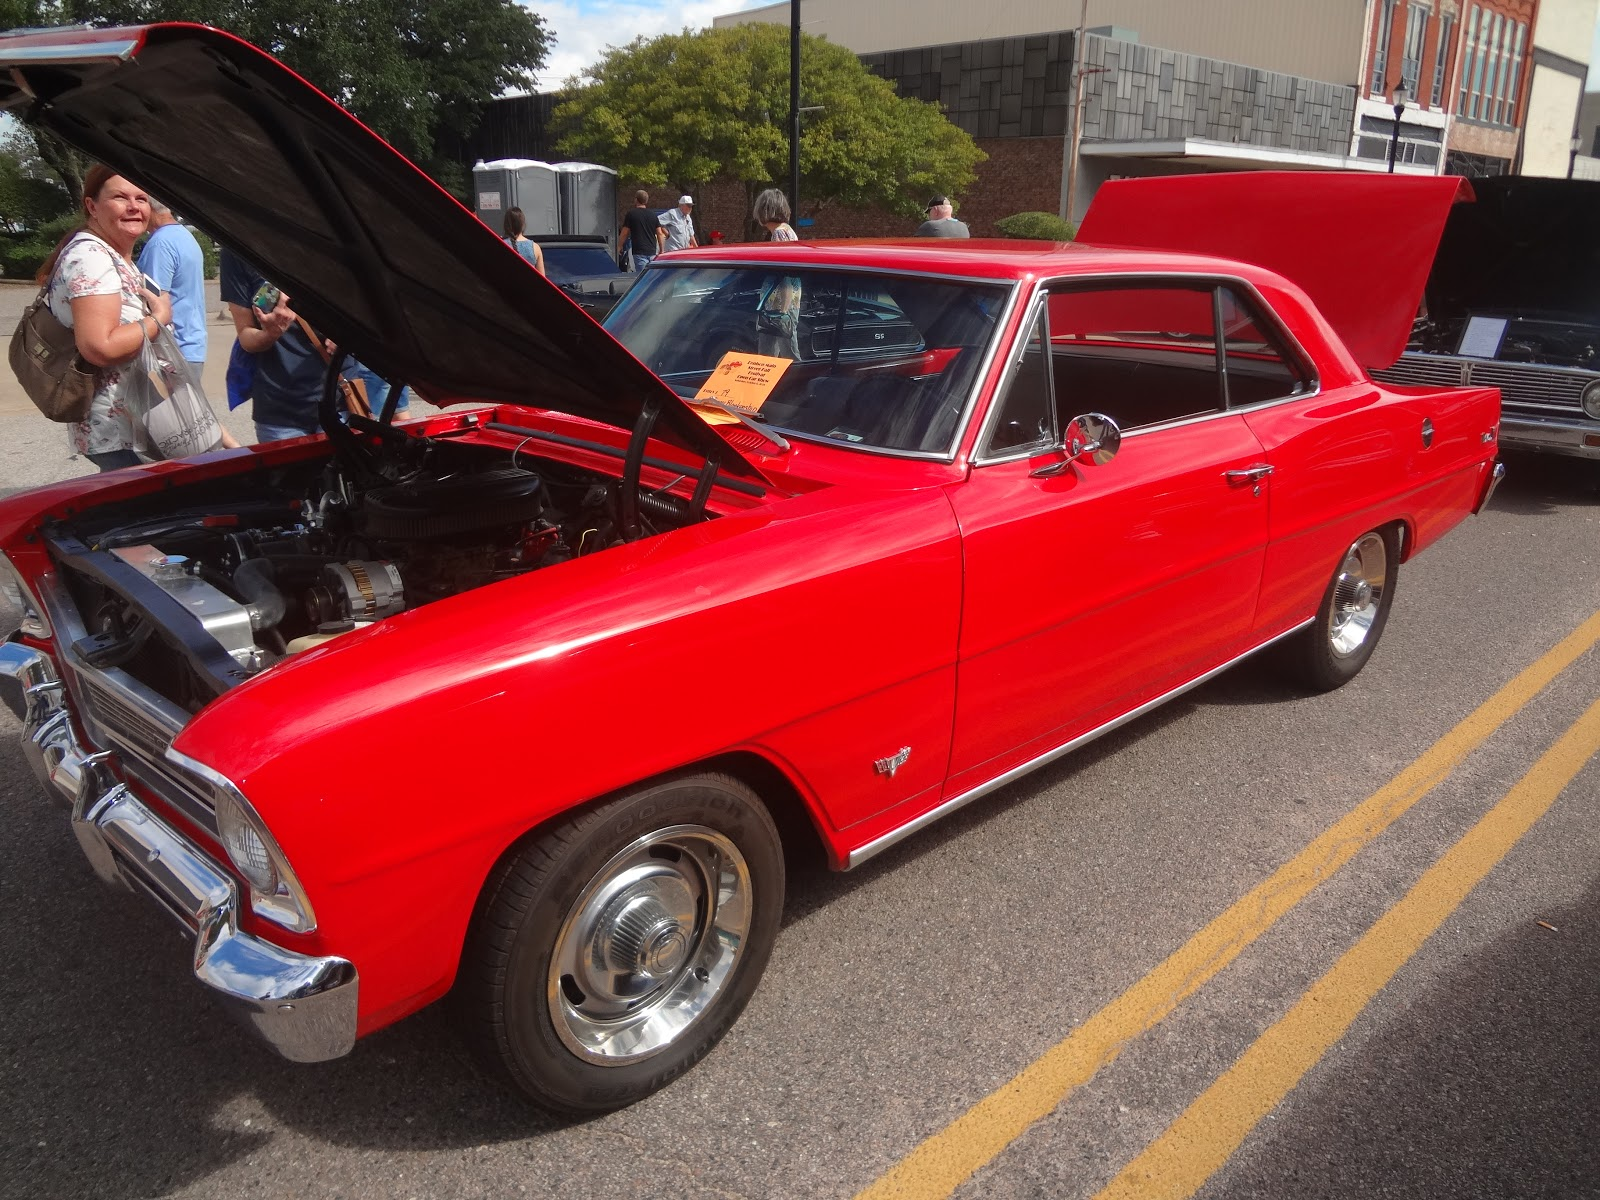 Underdogs Utterings 2018 1966 Chevy 327 Firing Order Nova Ii This One Has A V8 Engine And 4 Speed Transmission Lightweight Body Means You Could Smoke The Wheels In Any Gear If So Inclined